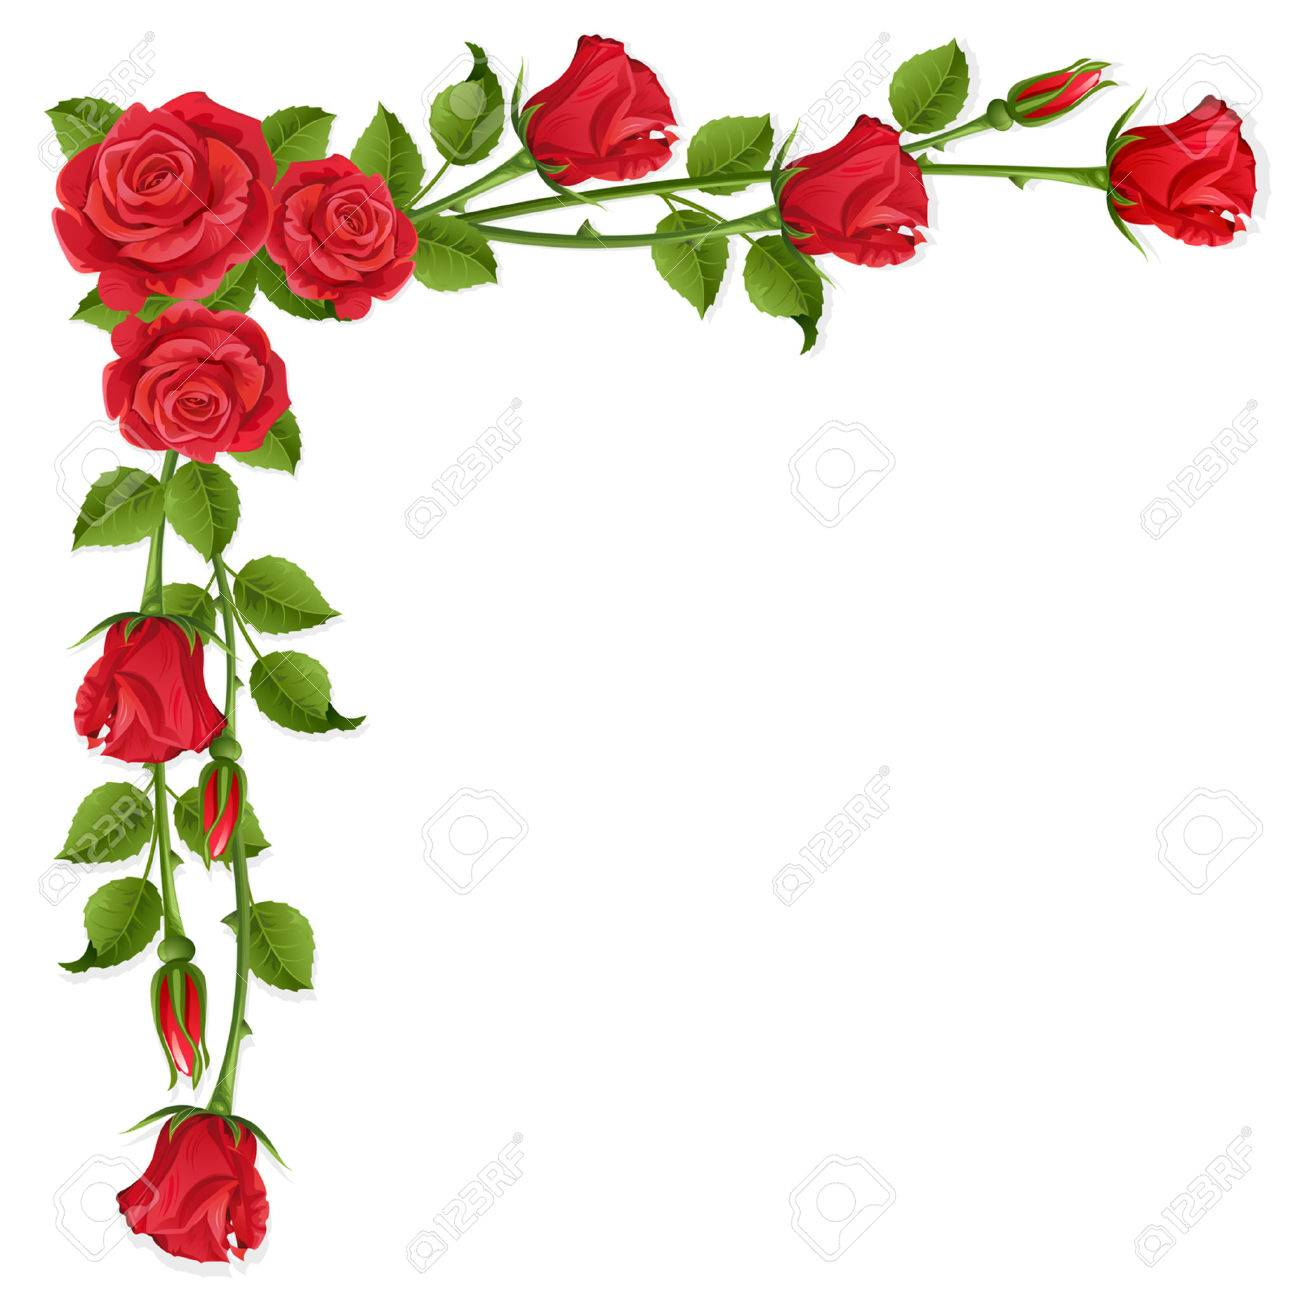 White background with red roses Stock Vector - 6243673